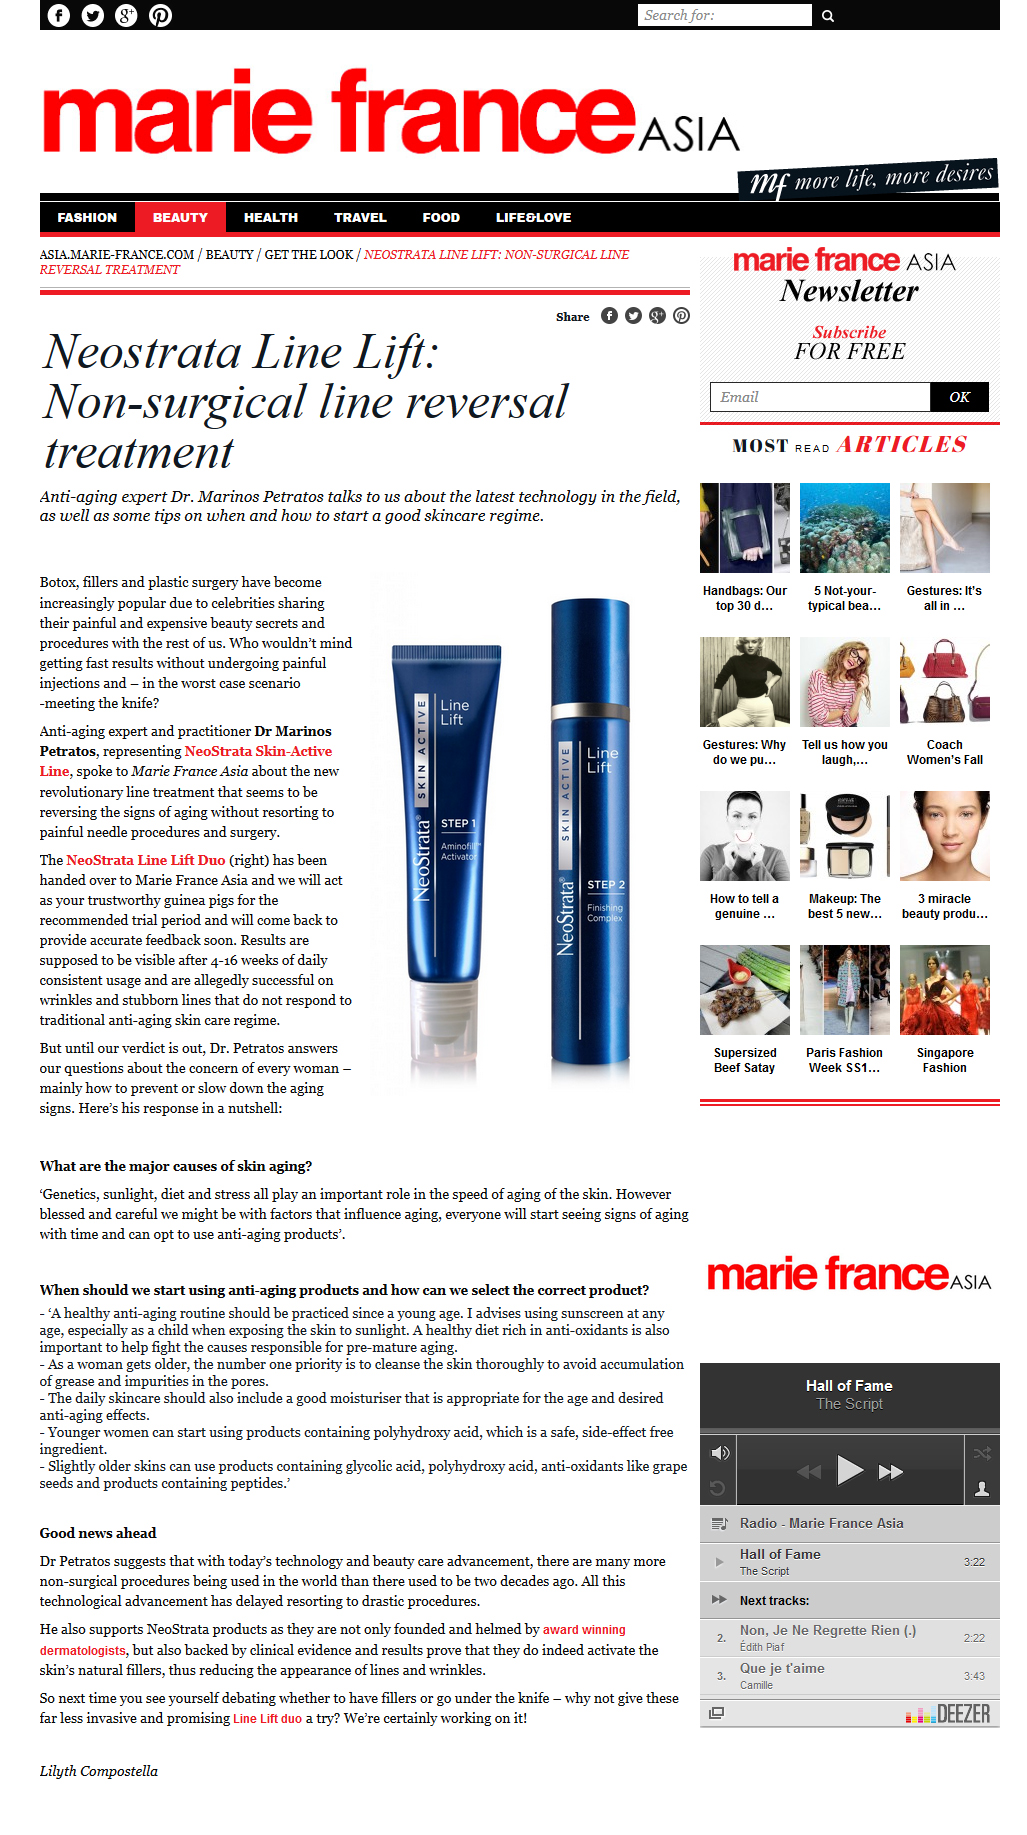 2013 09 23 - Line Lift Marie France Asia